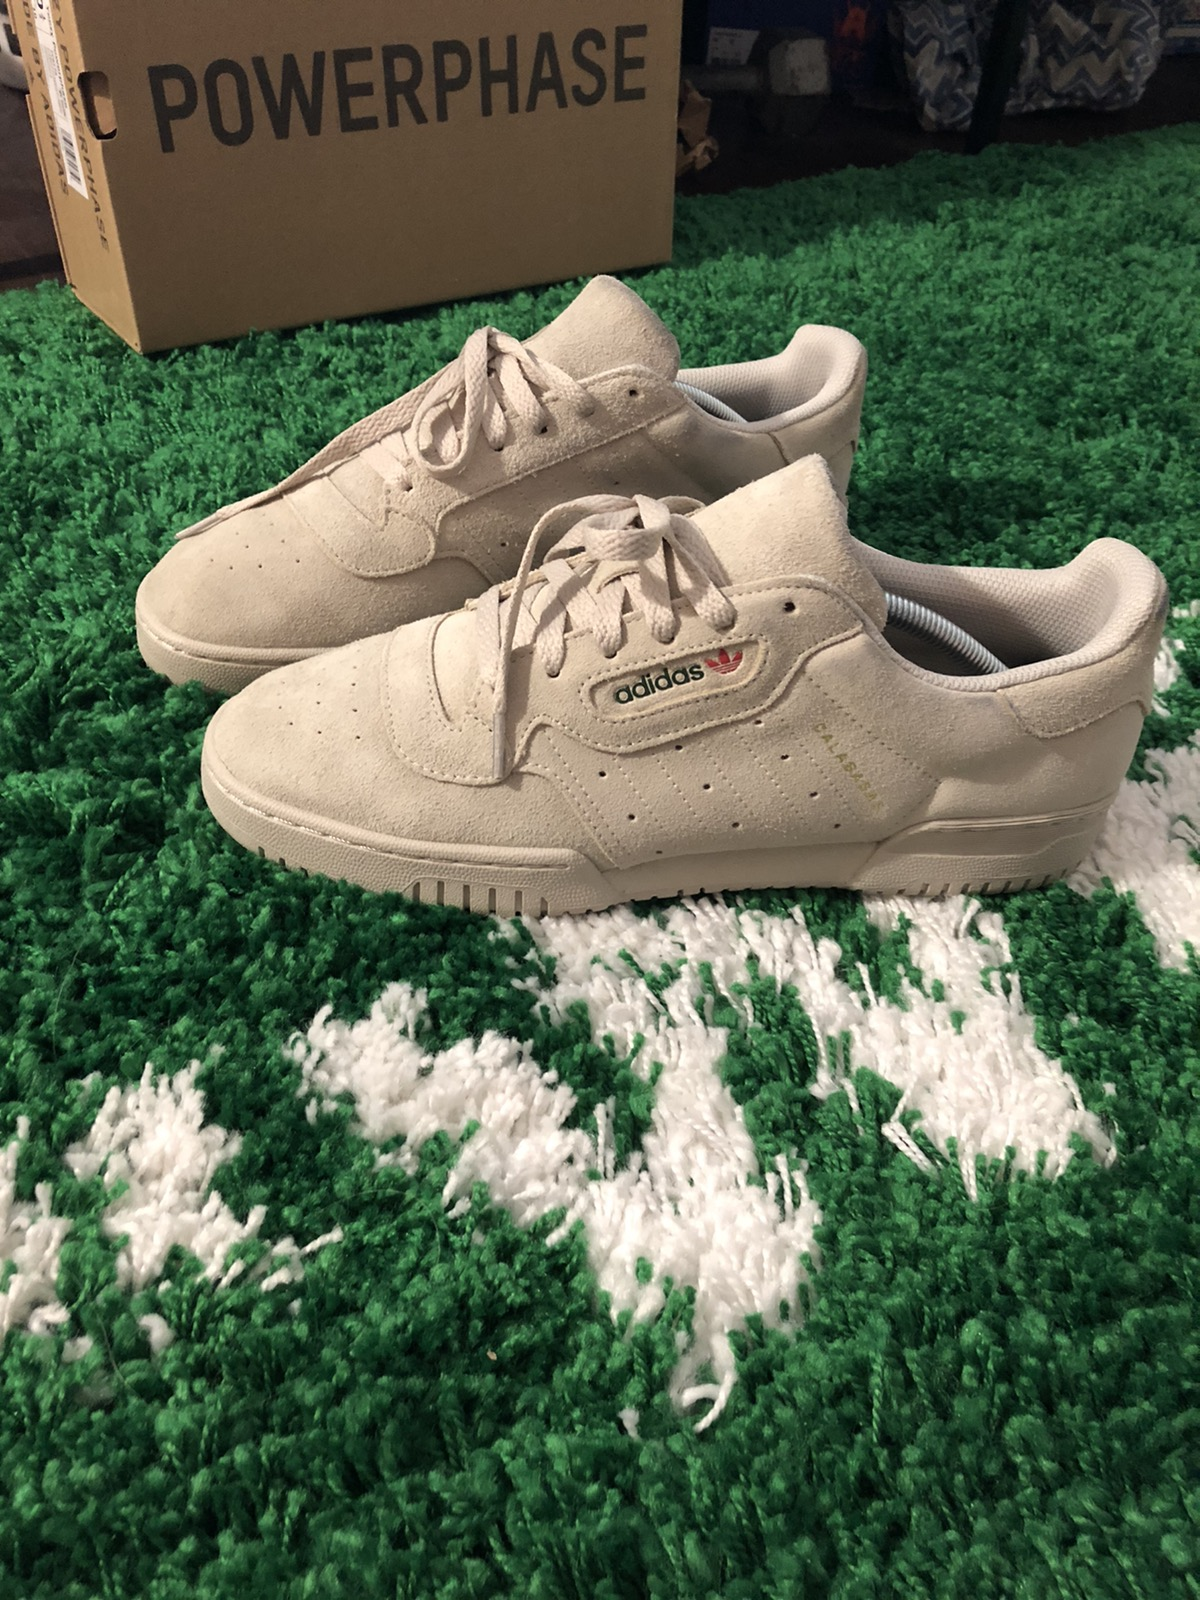 Yeezy PowerPhase 'Clear Brown'